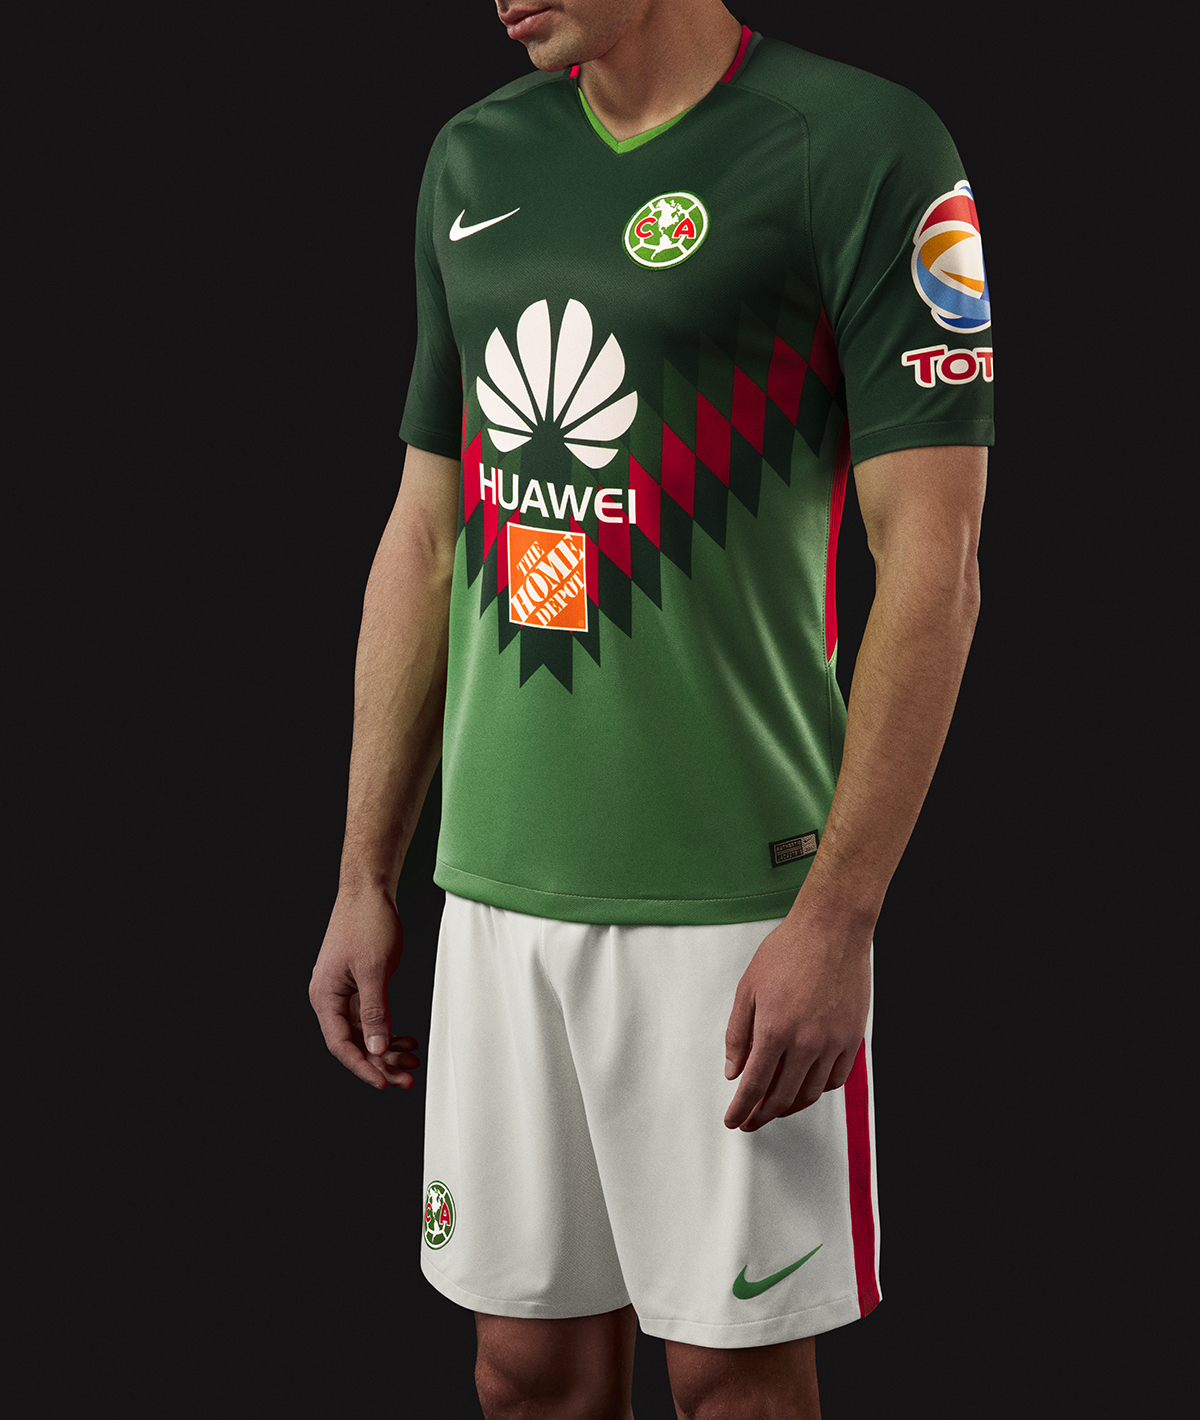 aa8432474b2 ... Click to enlarge image club america 2018 nike tricolor kit e.jpg ...